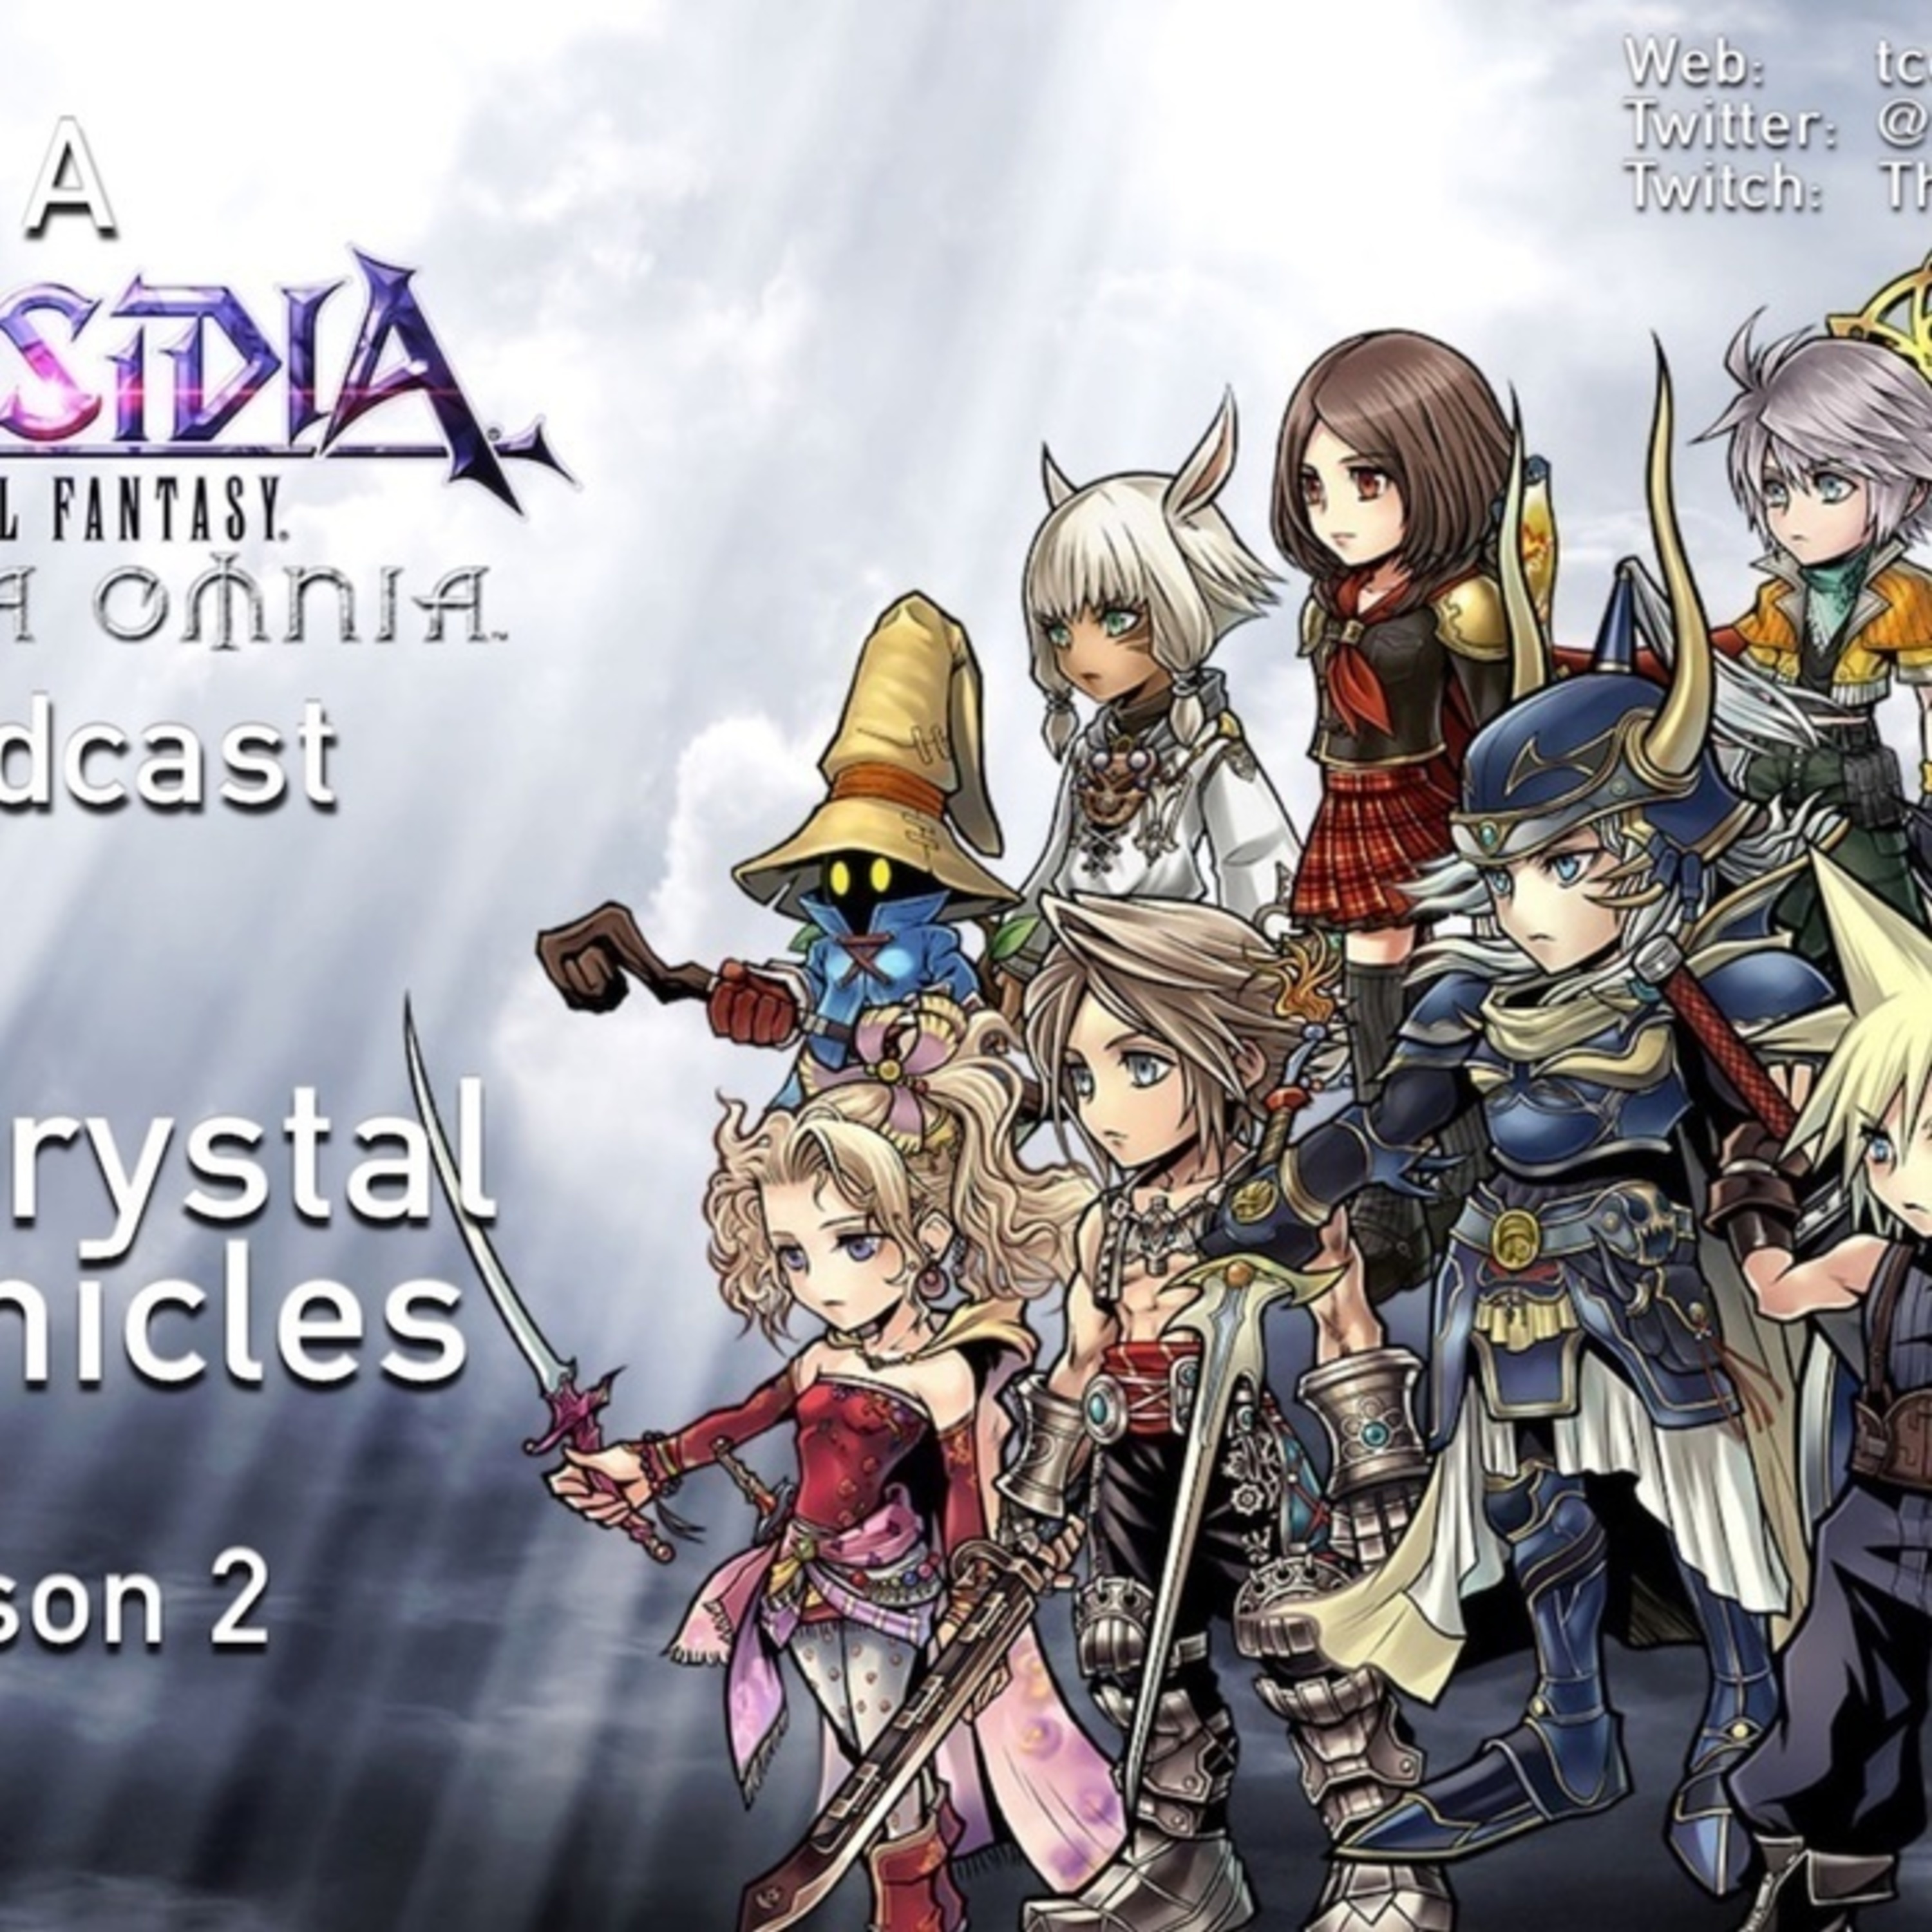 S2e7 Lost Chapters Pt 1 The Crystal Chronicles